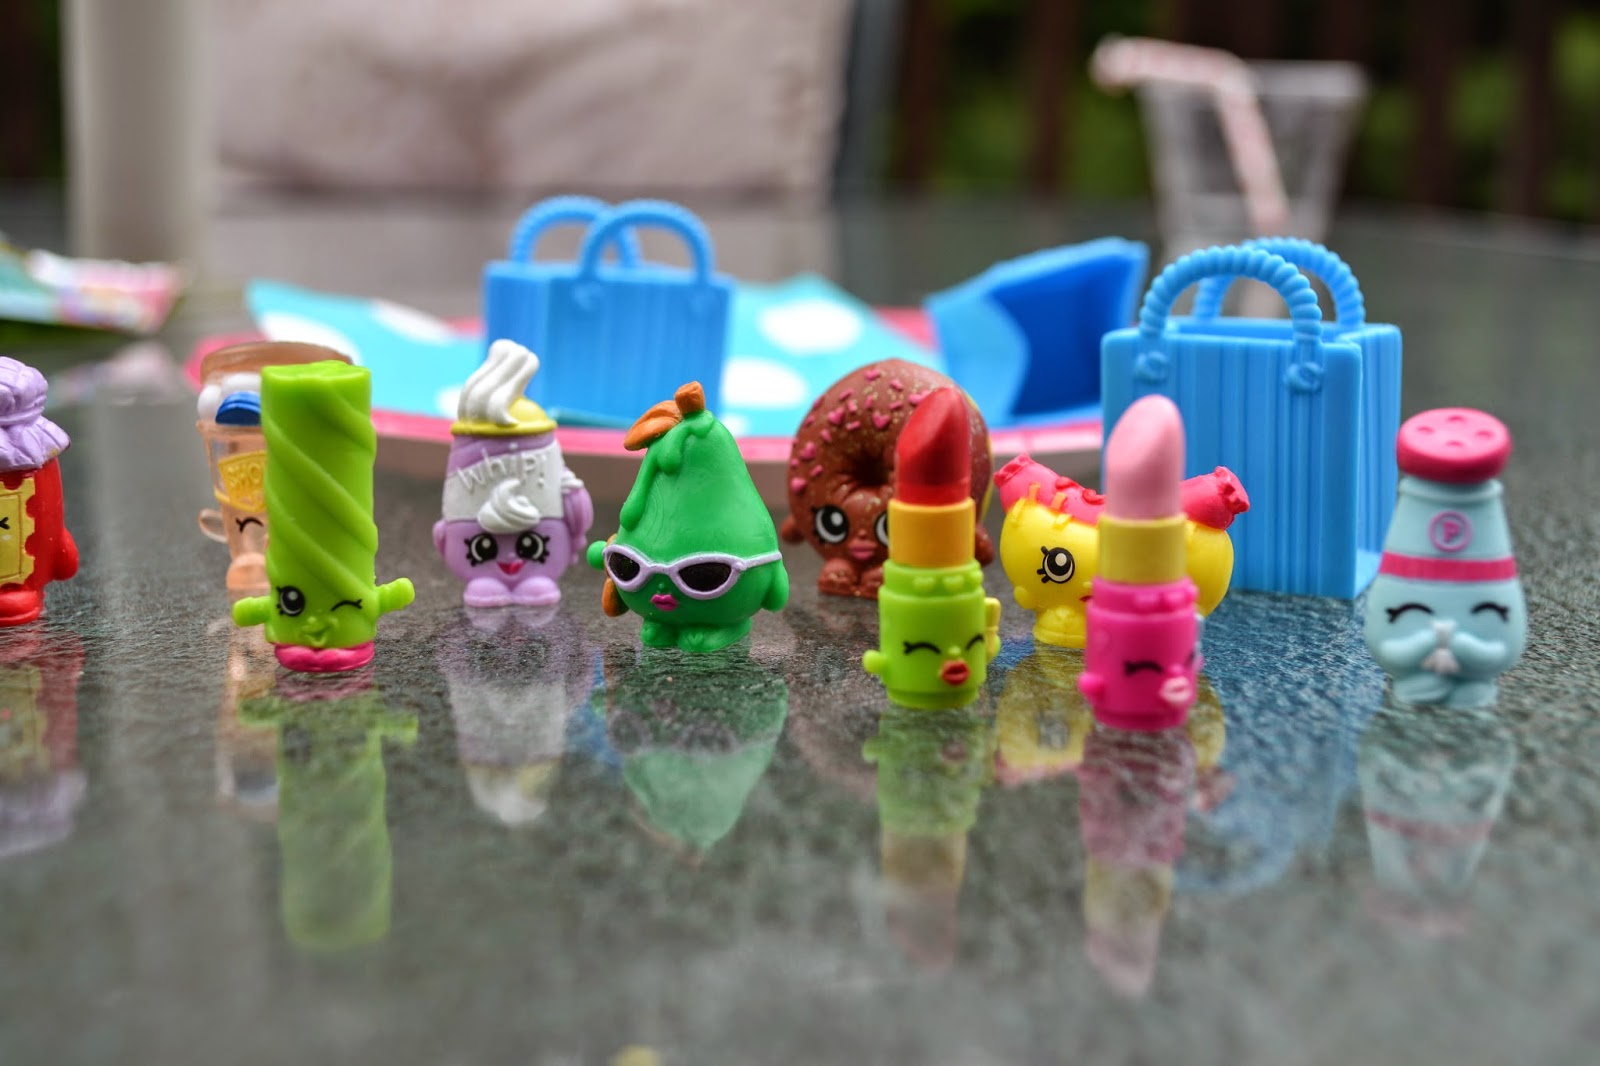 shopkin9 Shopkins Summer Playdate   What a great day with new collectible and a  Shopkins prize pack giveaway!